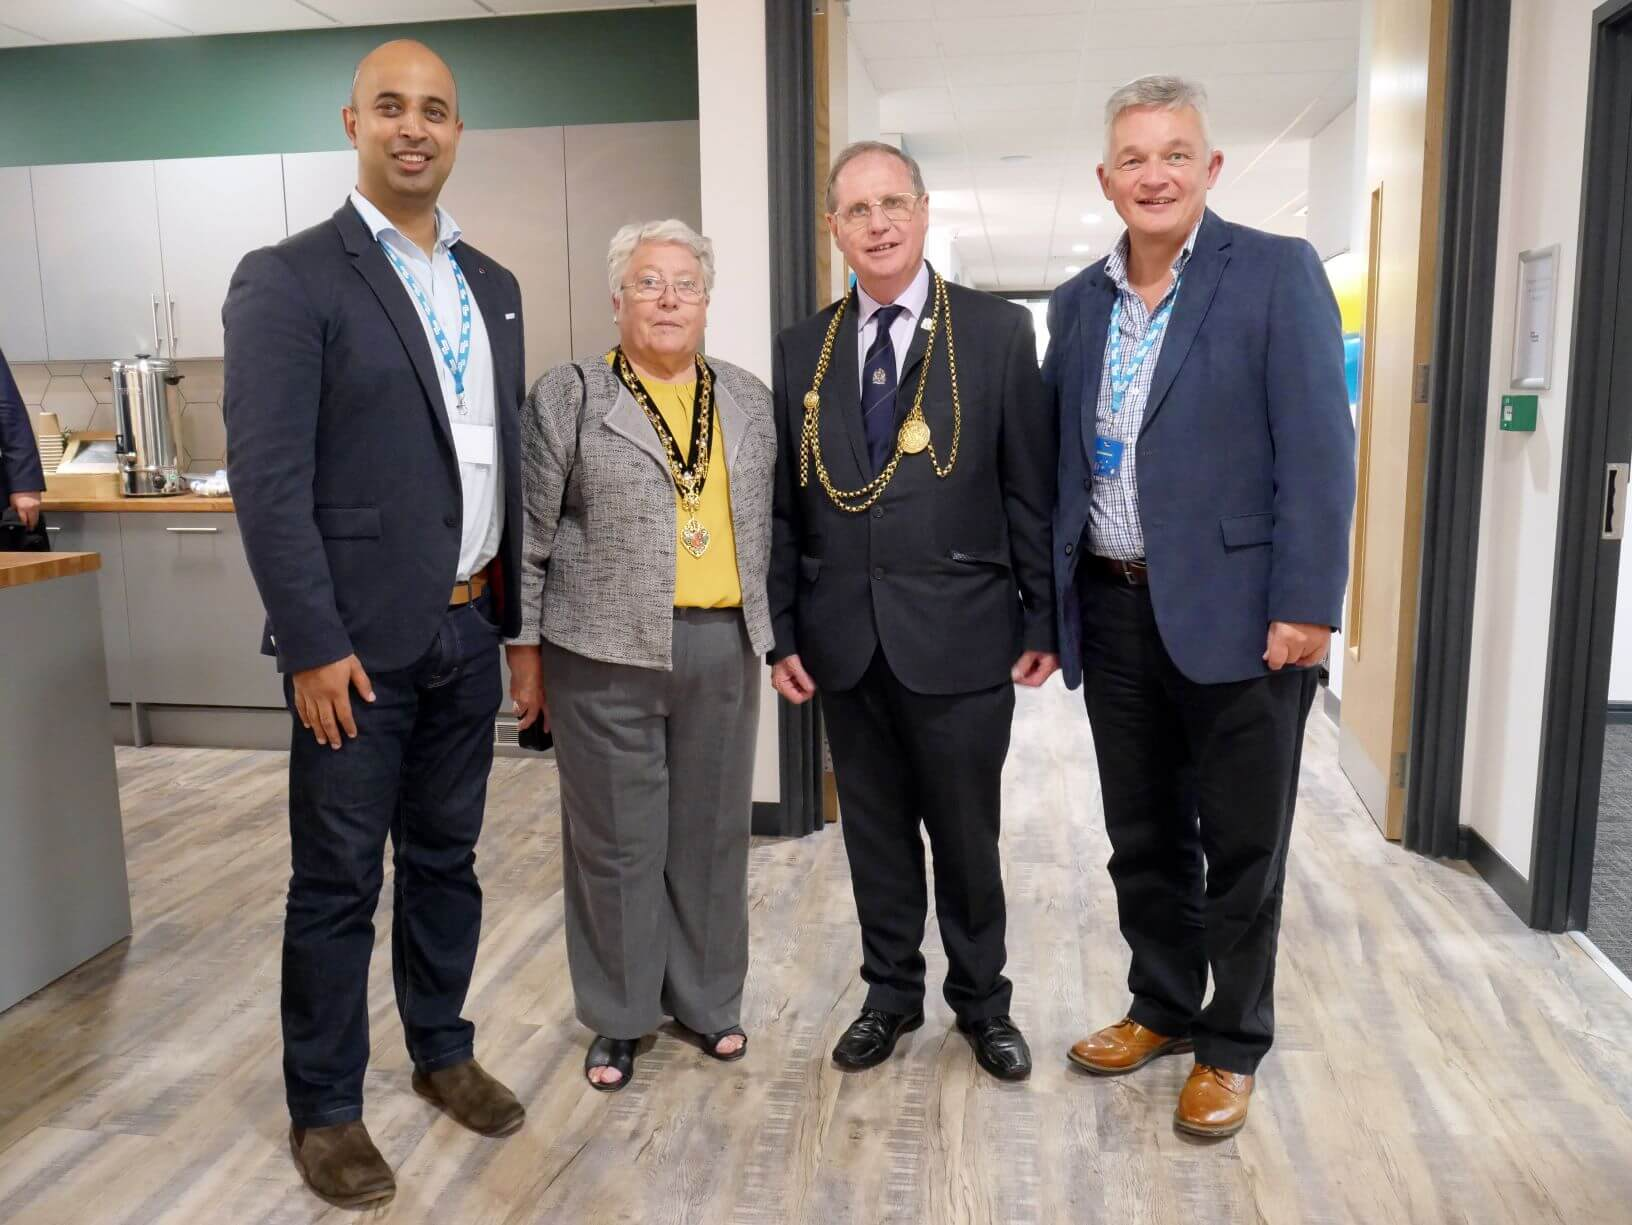 The Lord May and Mayoress of Newcastle with Brian Andrews, Head of Operations at BizSpace and Khalid Aziz, Marketing Director at BizSpace.